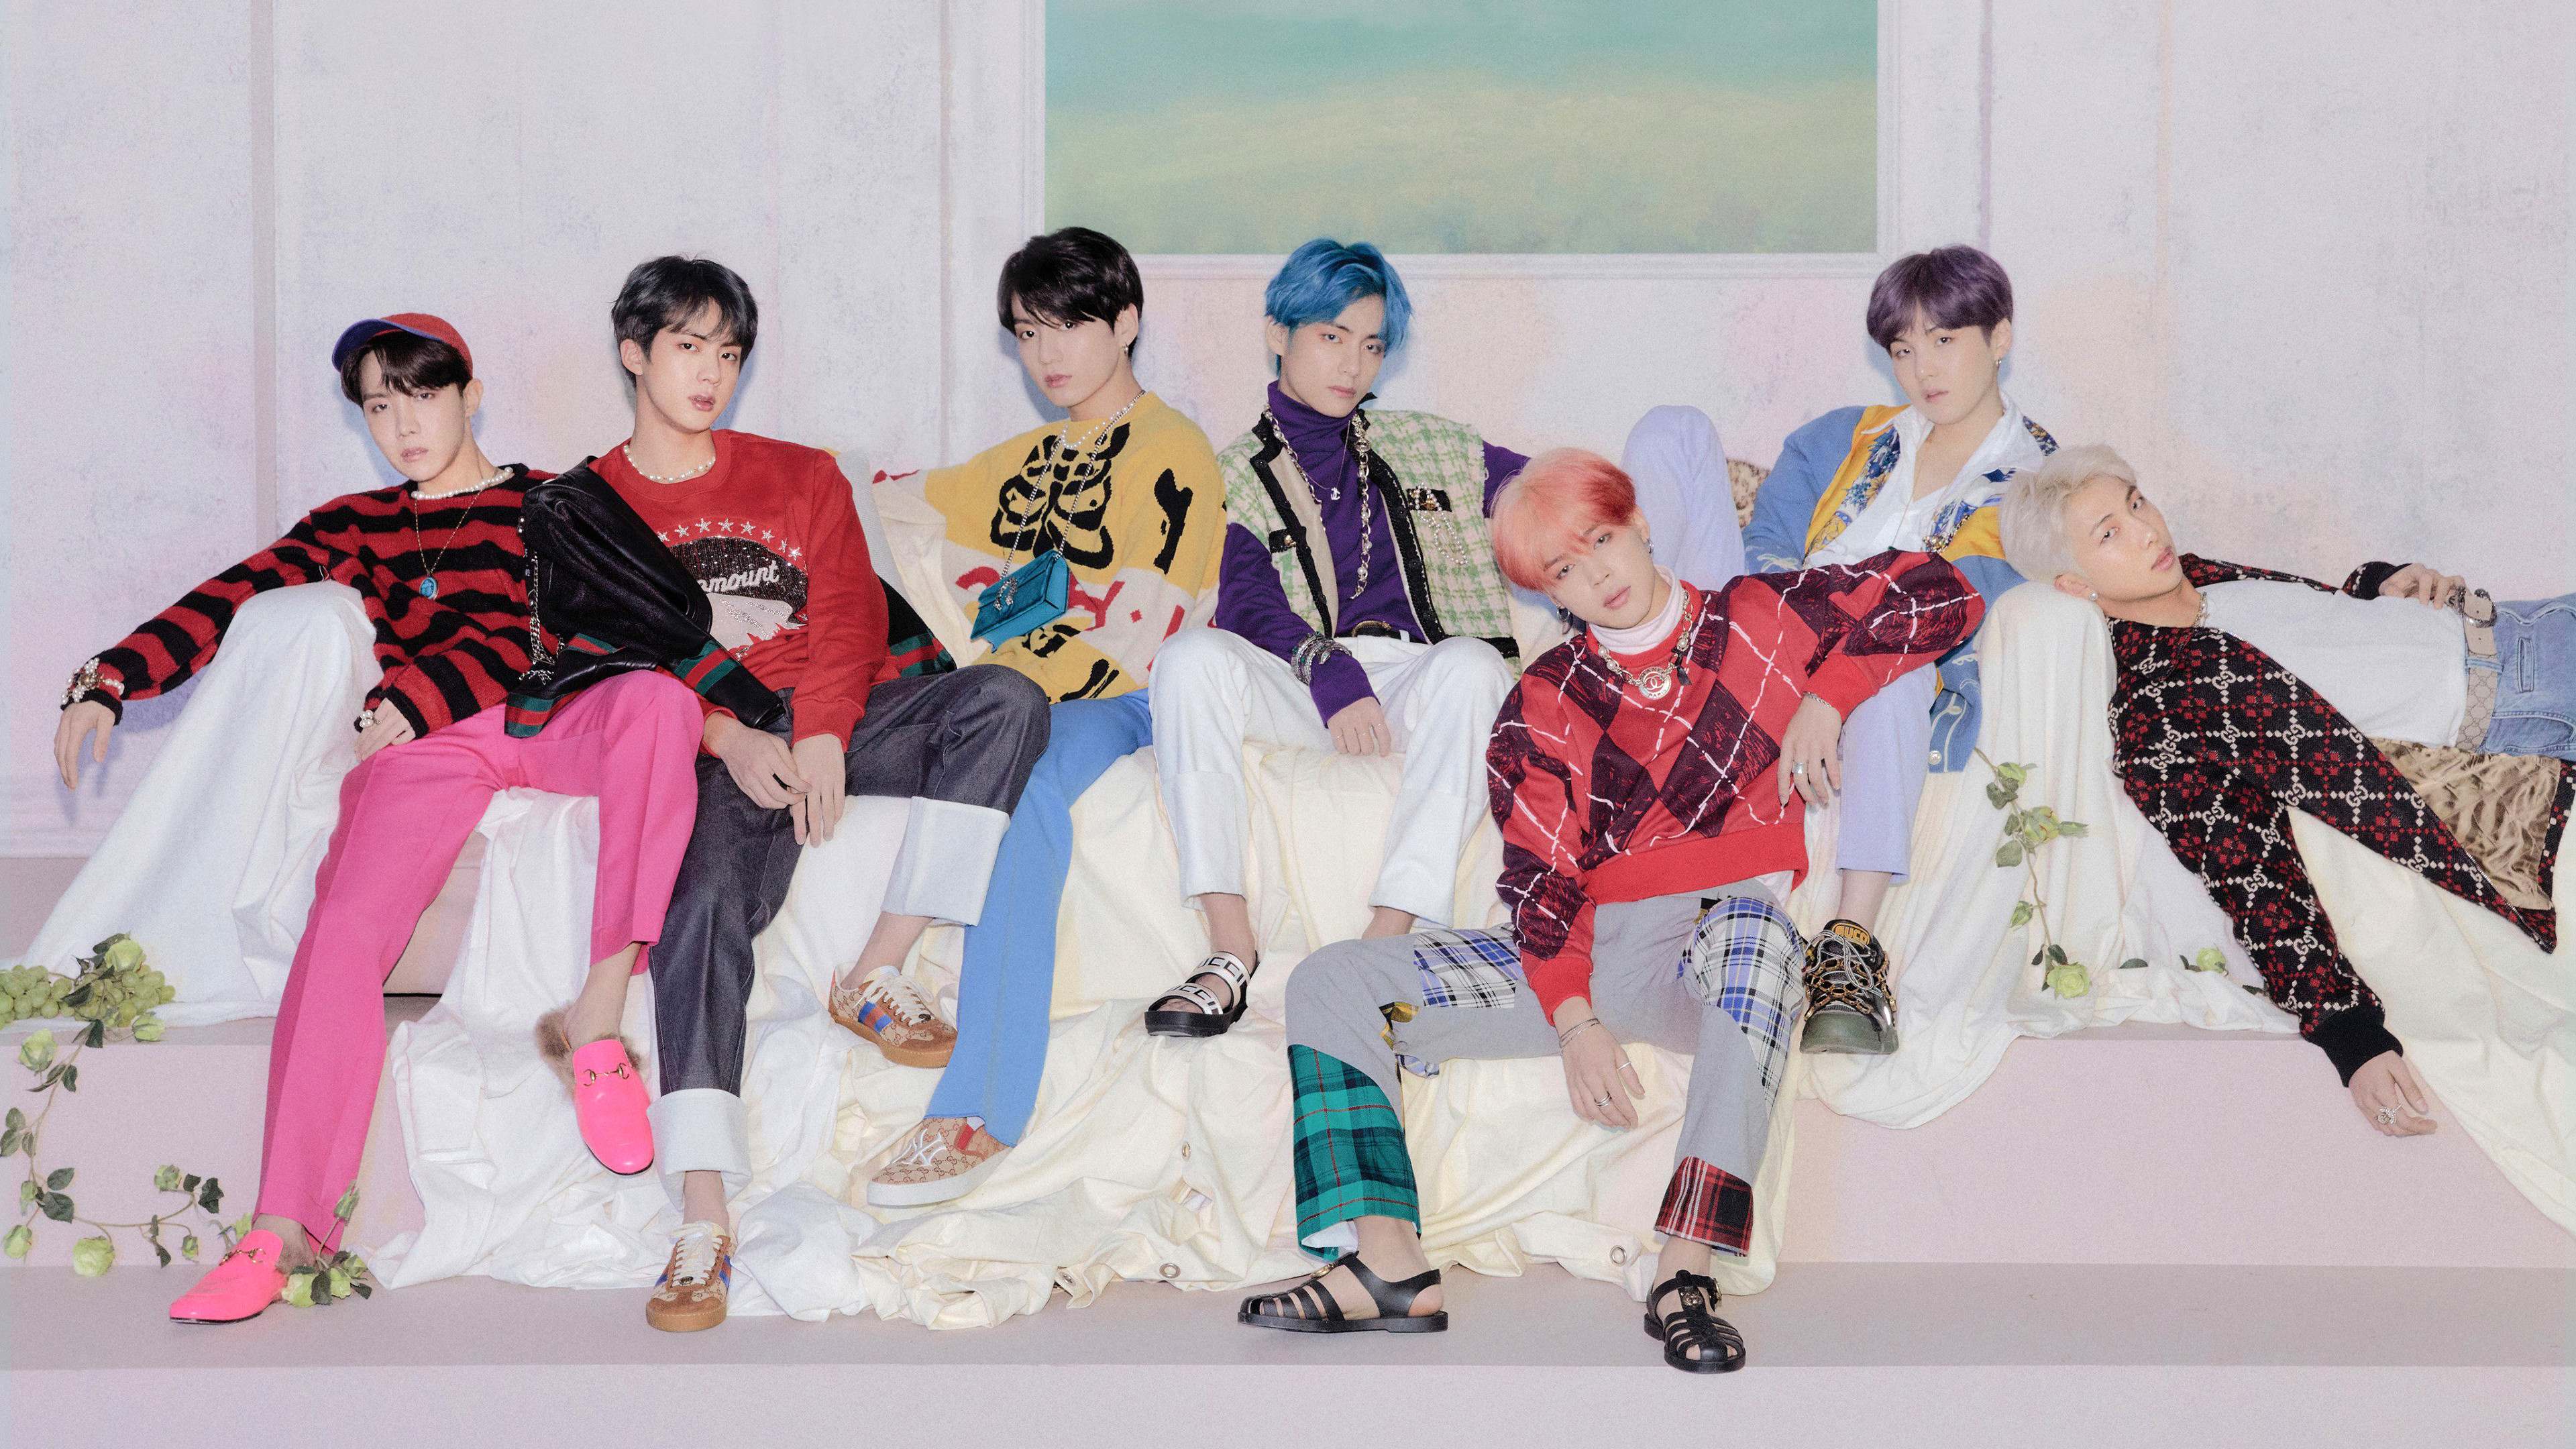 bts map of the soul persona members uhdpaper.com 4K 17